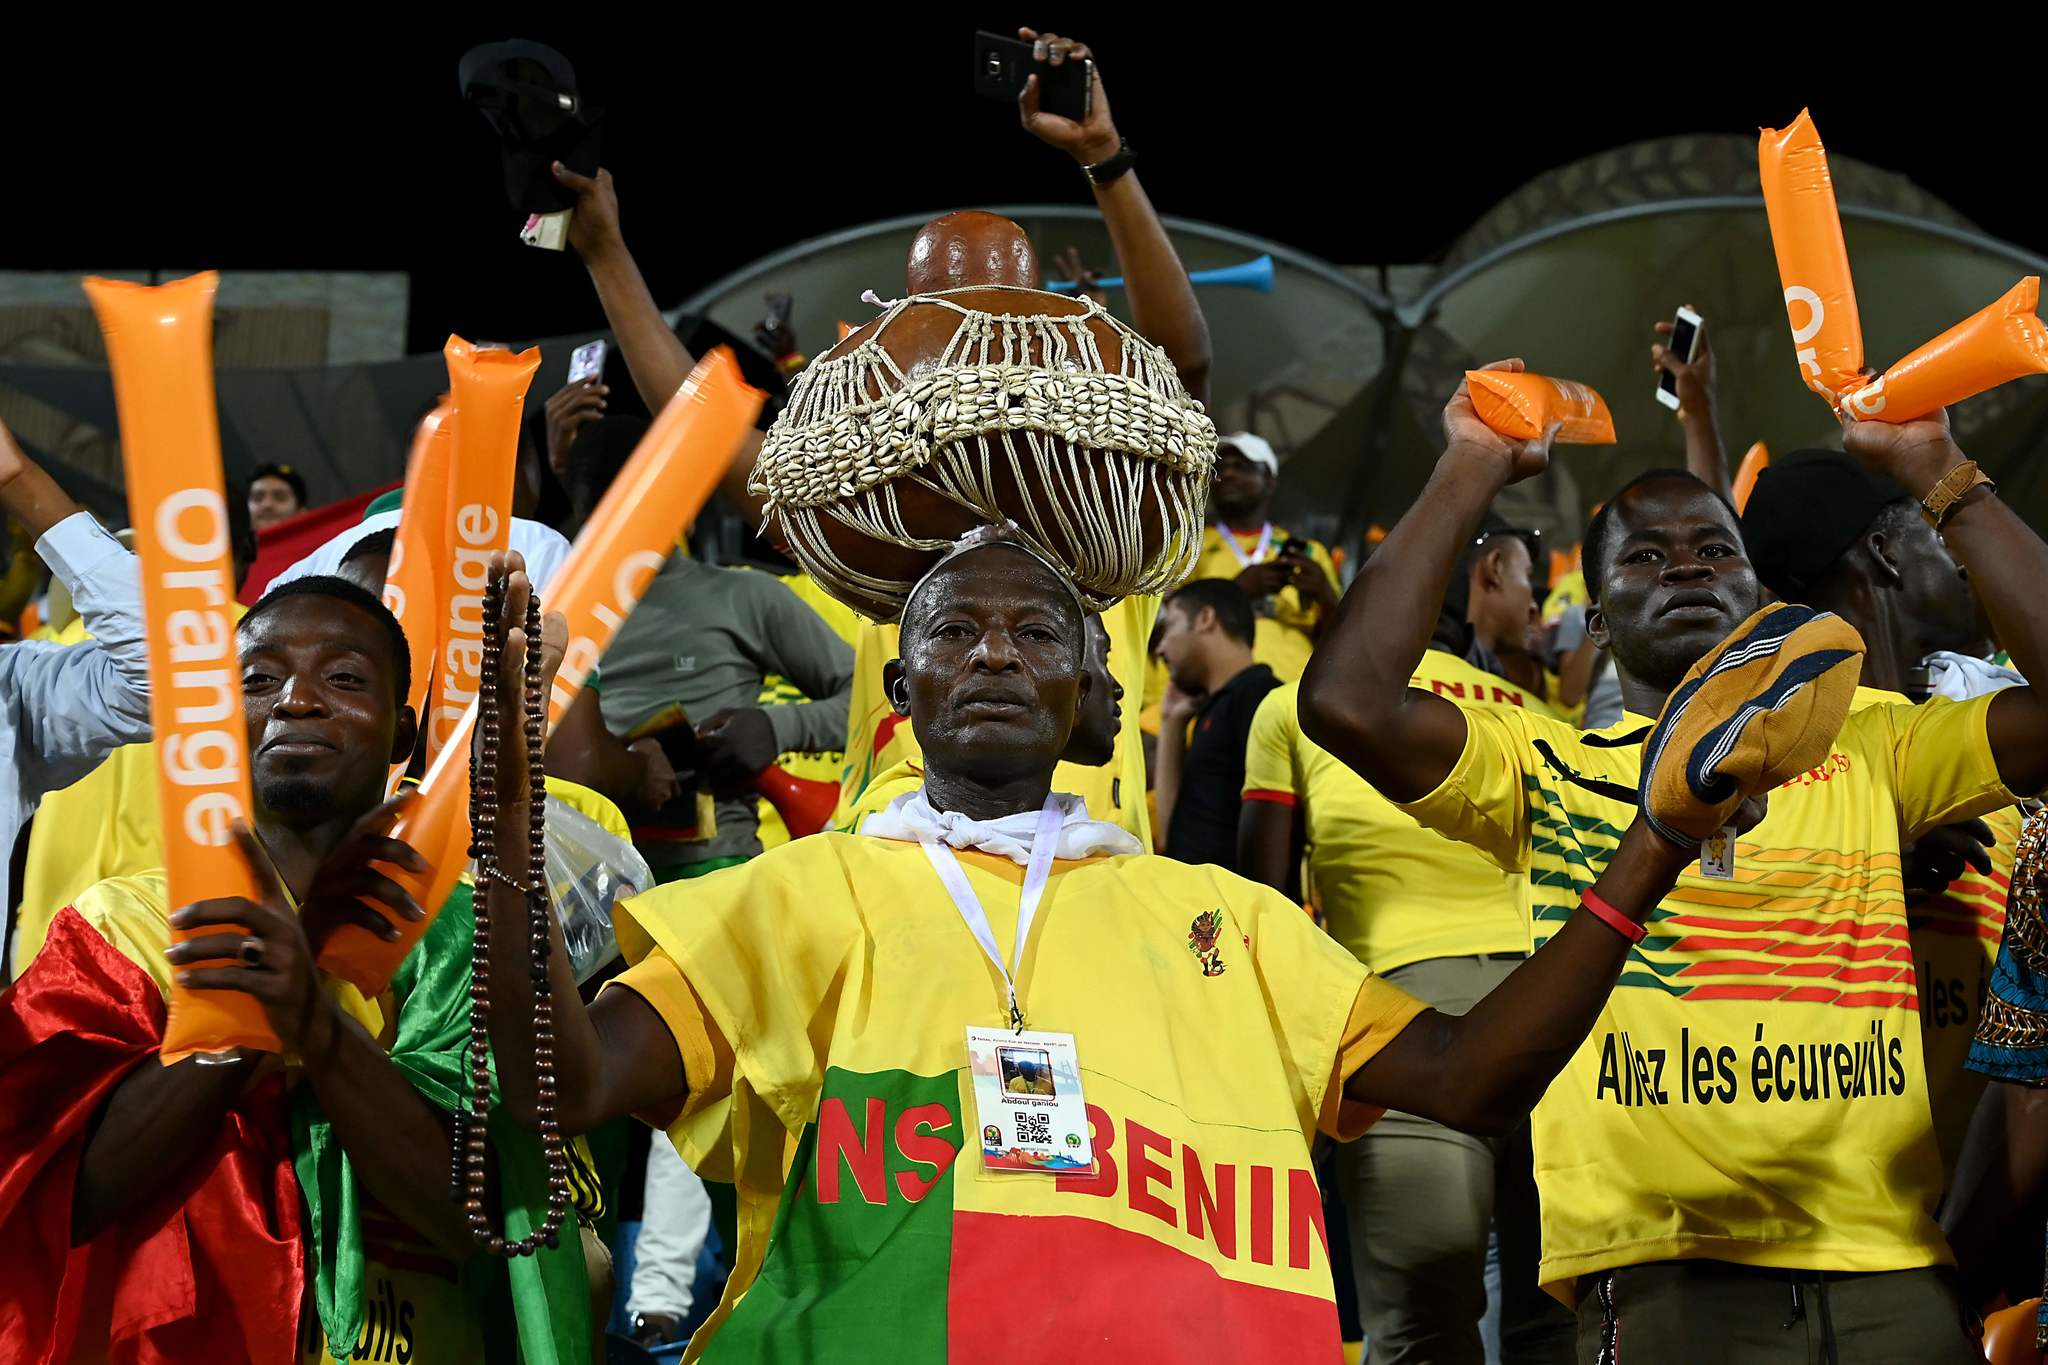 <HIT>Benin</HIT><HIT>fans</HIT> celebrate after qualifying for the round of 16 during the 2019 Africa Cup of Nations (CAN) Group F football match between <HIT>Benin</HIT> and Cameroon at the Ismailia Stadium in the north-eastern Egyptian city on July 2, 2019. (Photo by OZAN KOSE / AFP)